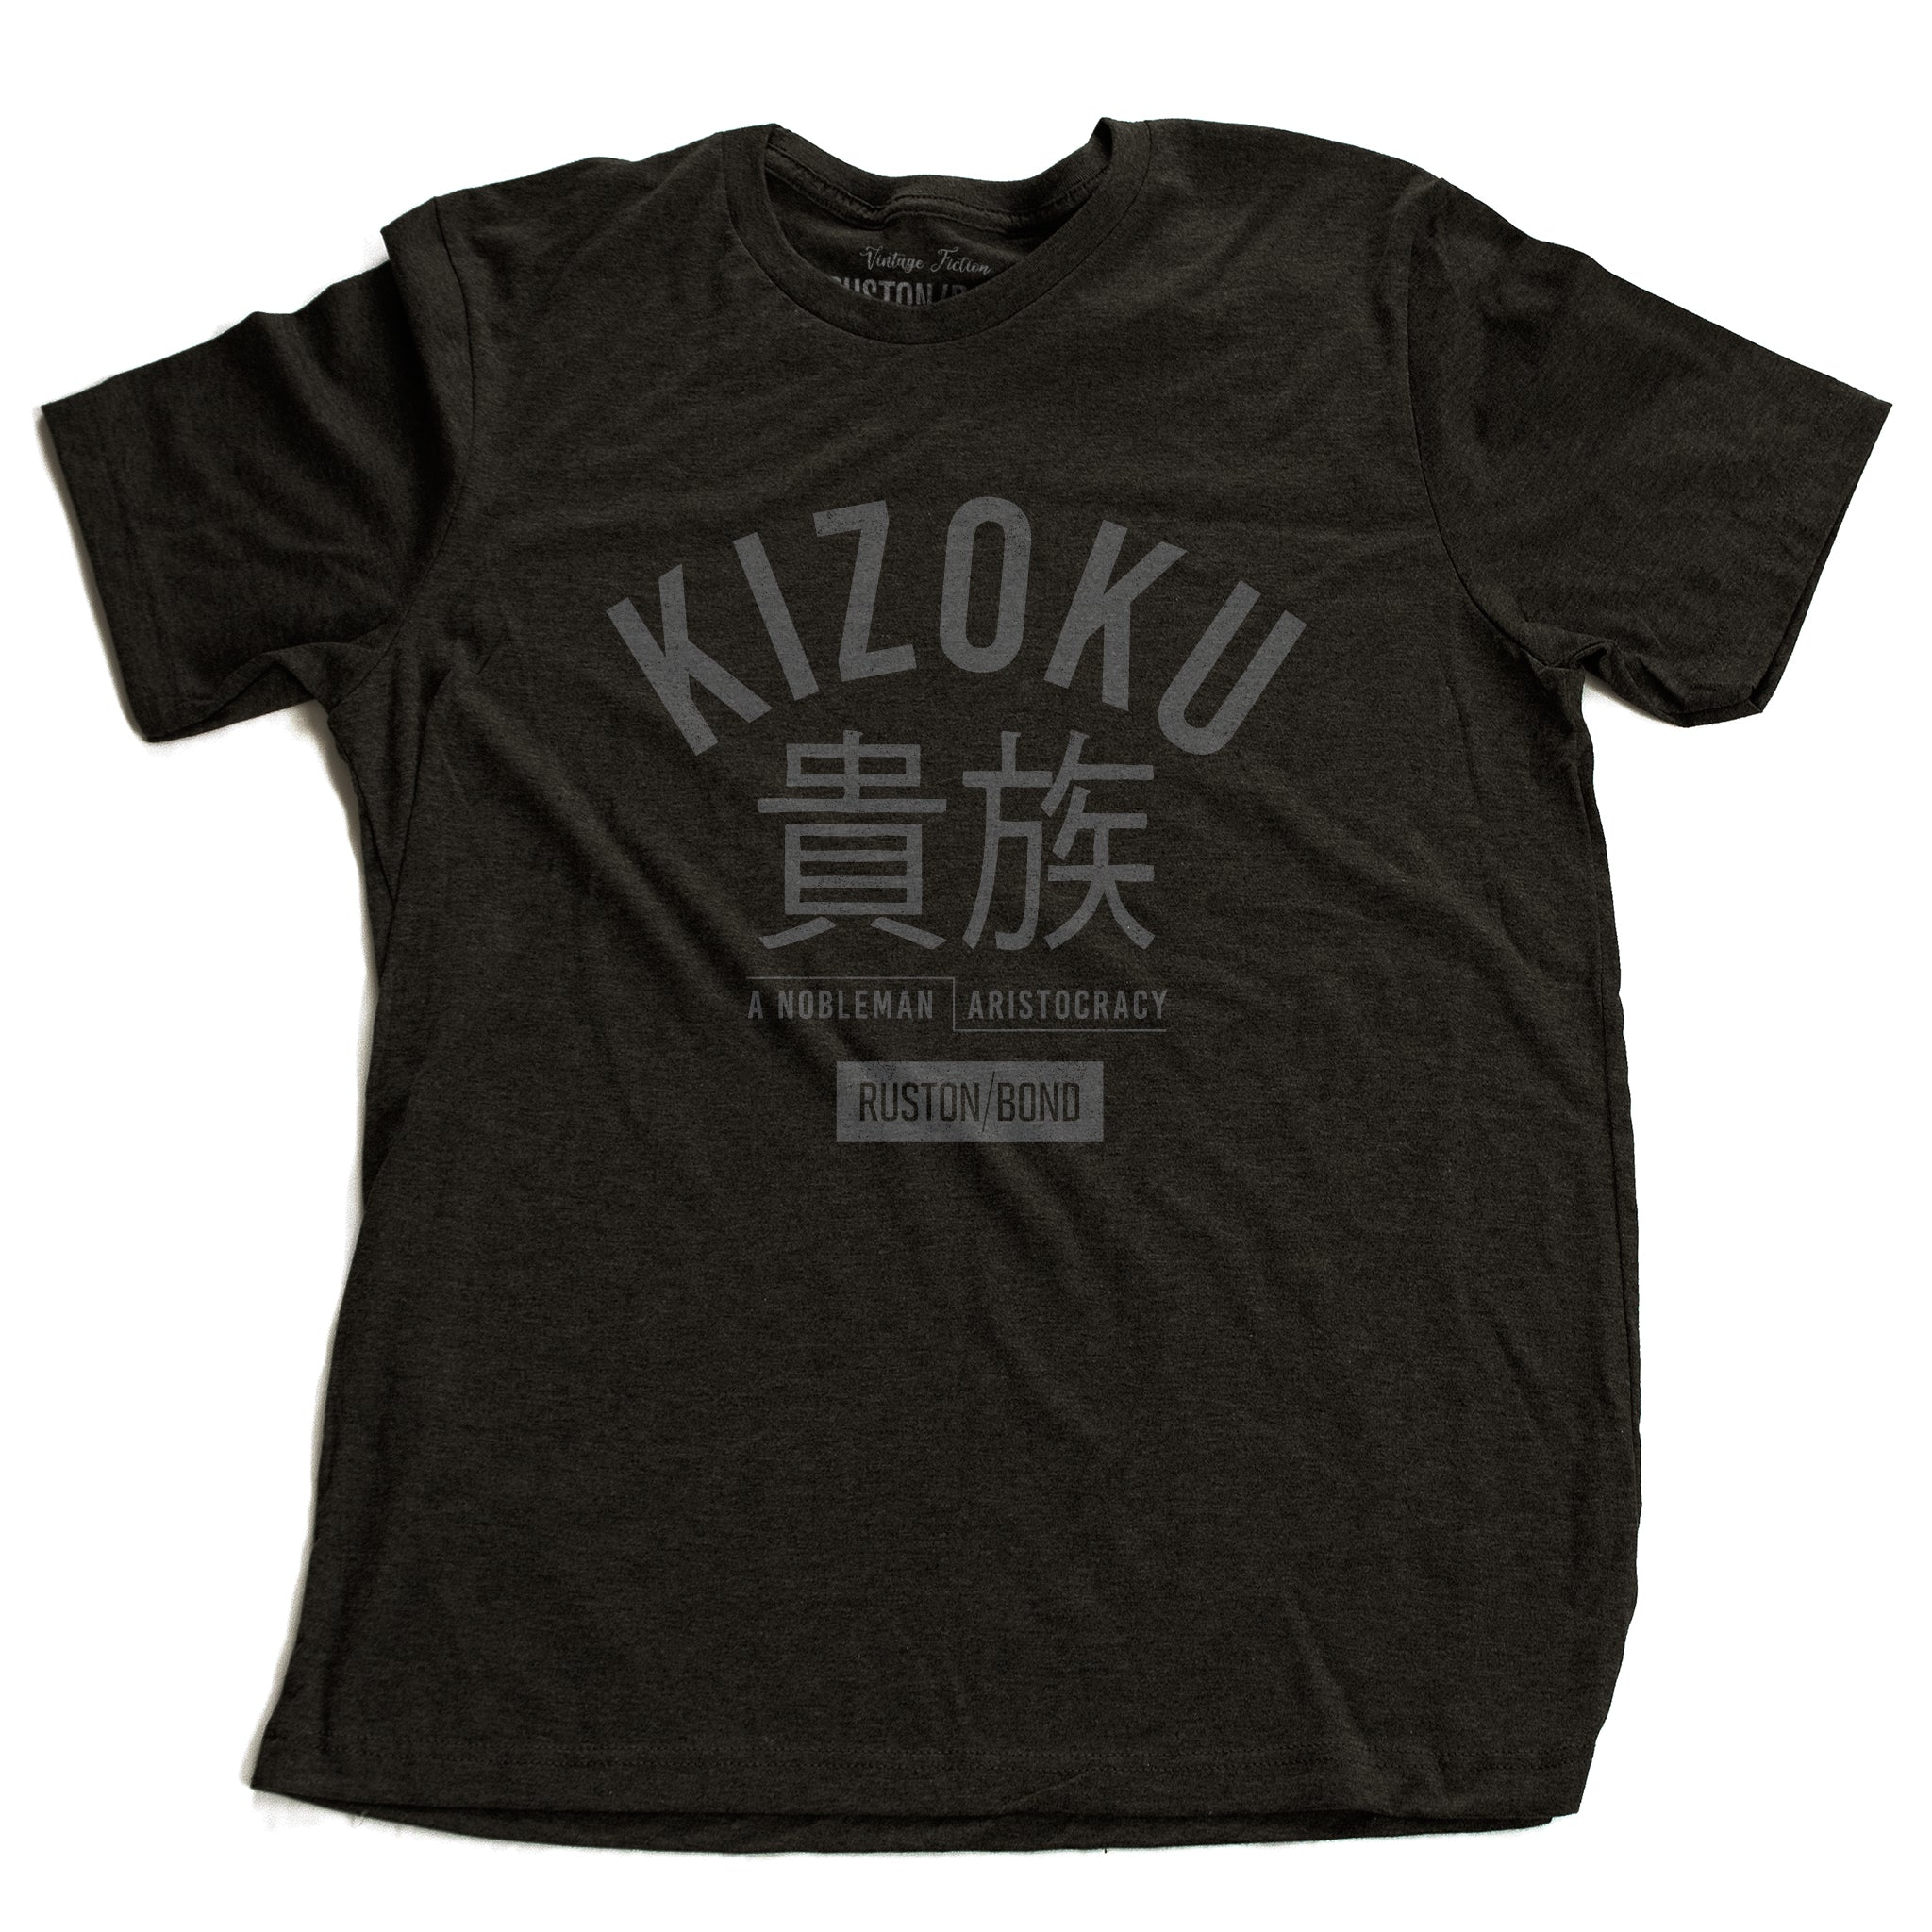 "A retro fashion t-shirt in Dark Gray Heather, with the bold typographic of the Japanese word ""KIZOKU"" and ""a nobleman / aristocracy"" below the Japanese characters. By the fashion brand Ruston/Bond, from wolfsaint.net."